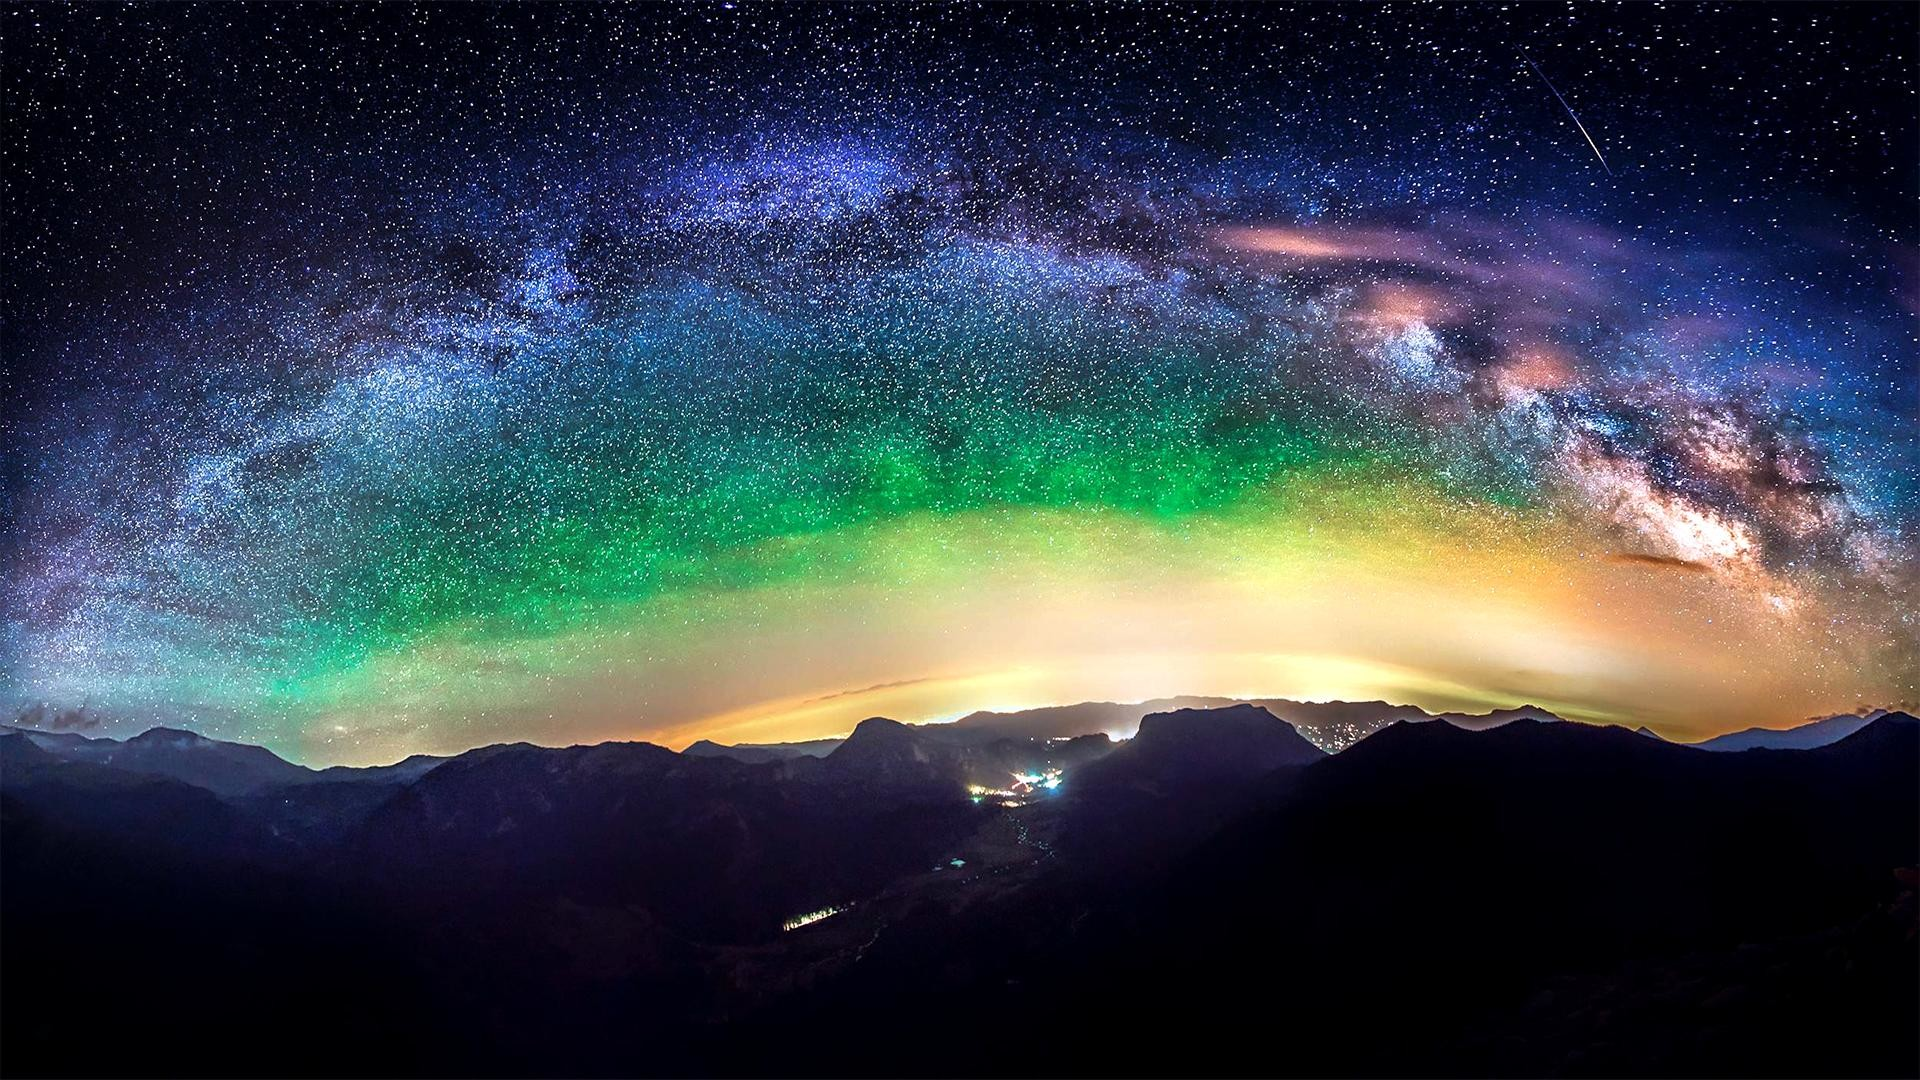 Milky Way over the Rocky Mountains (shot by /u/only_eats_plankton  from /r/SpacePorn) …